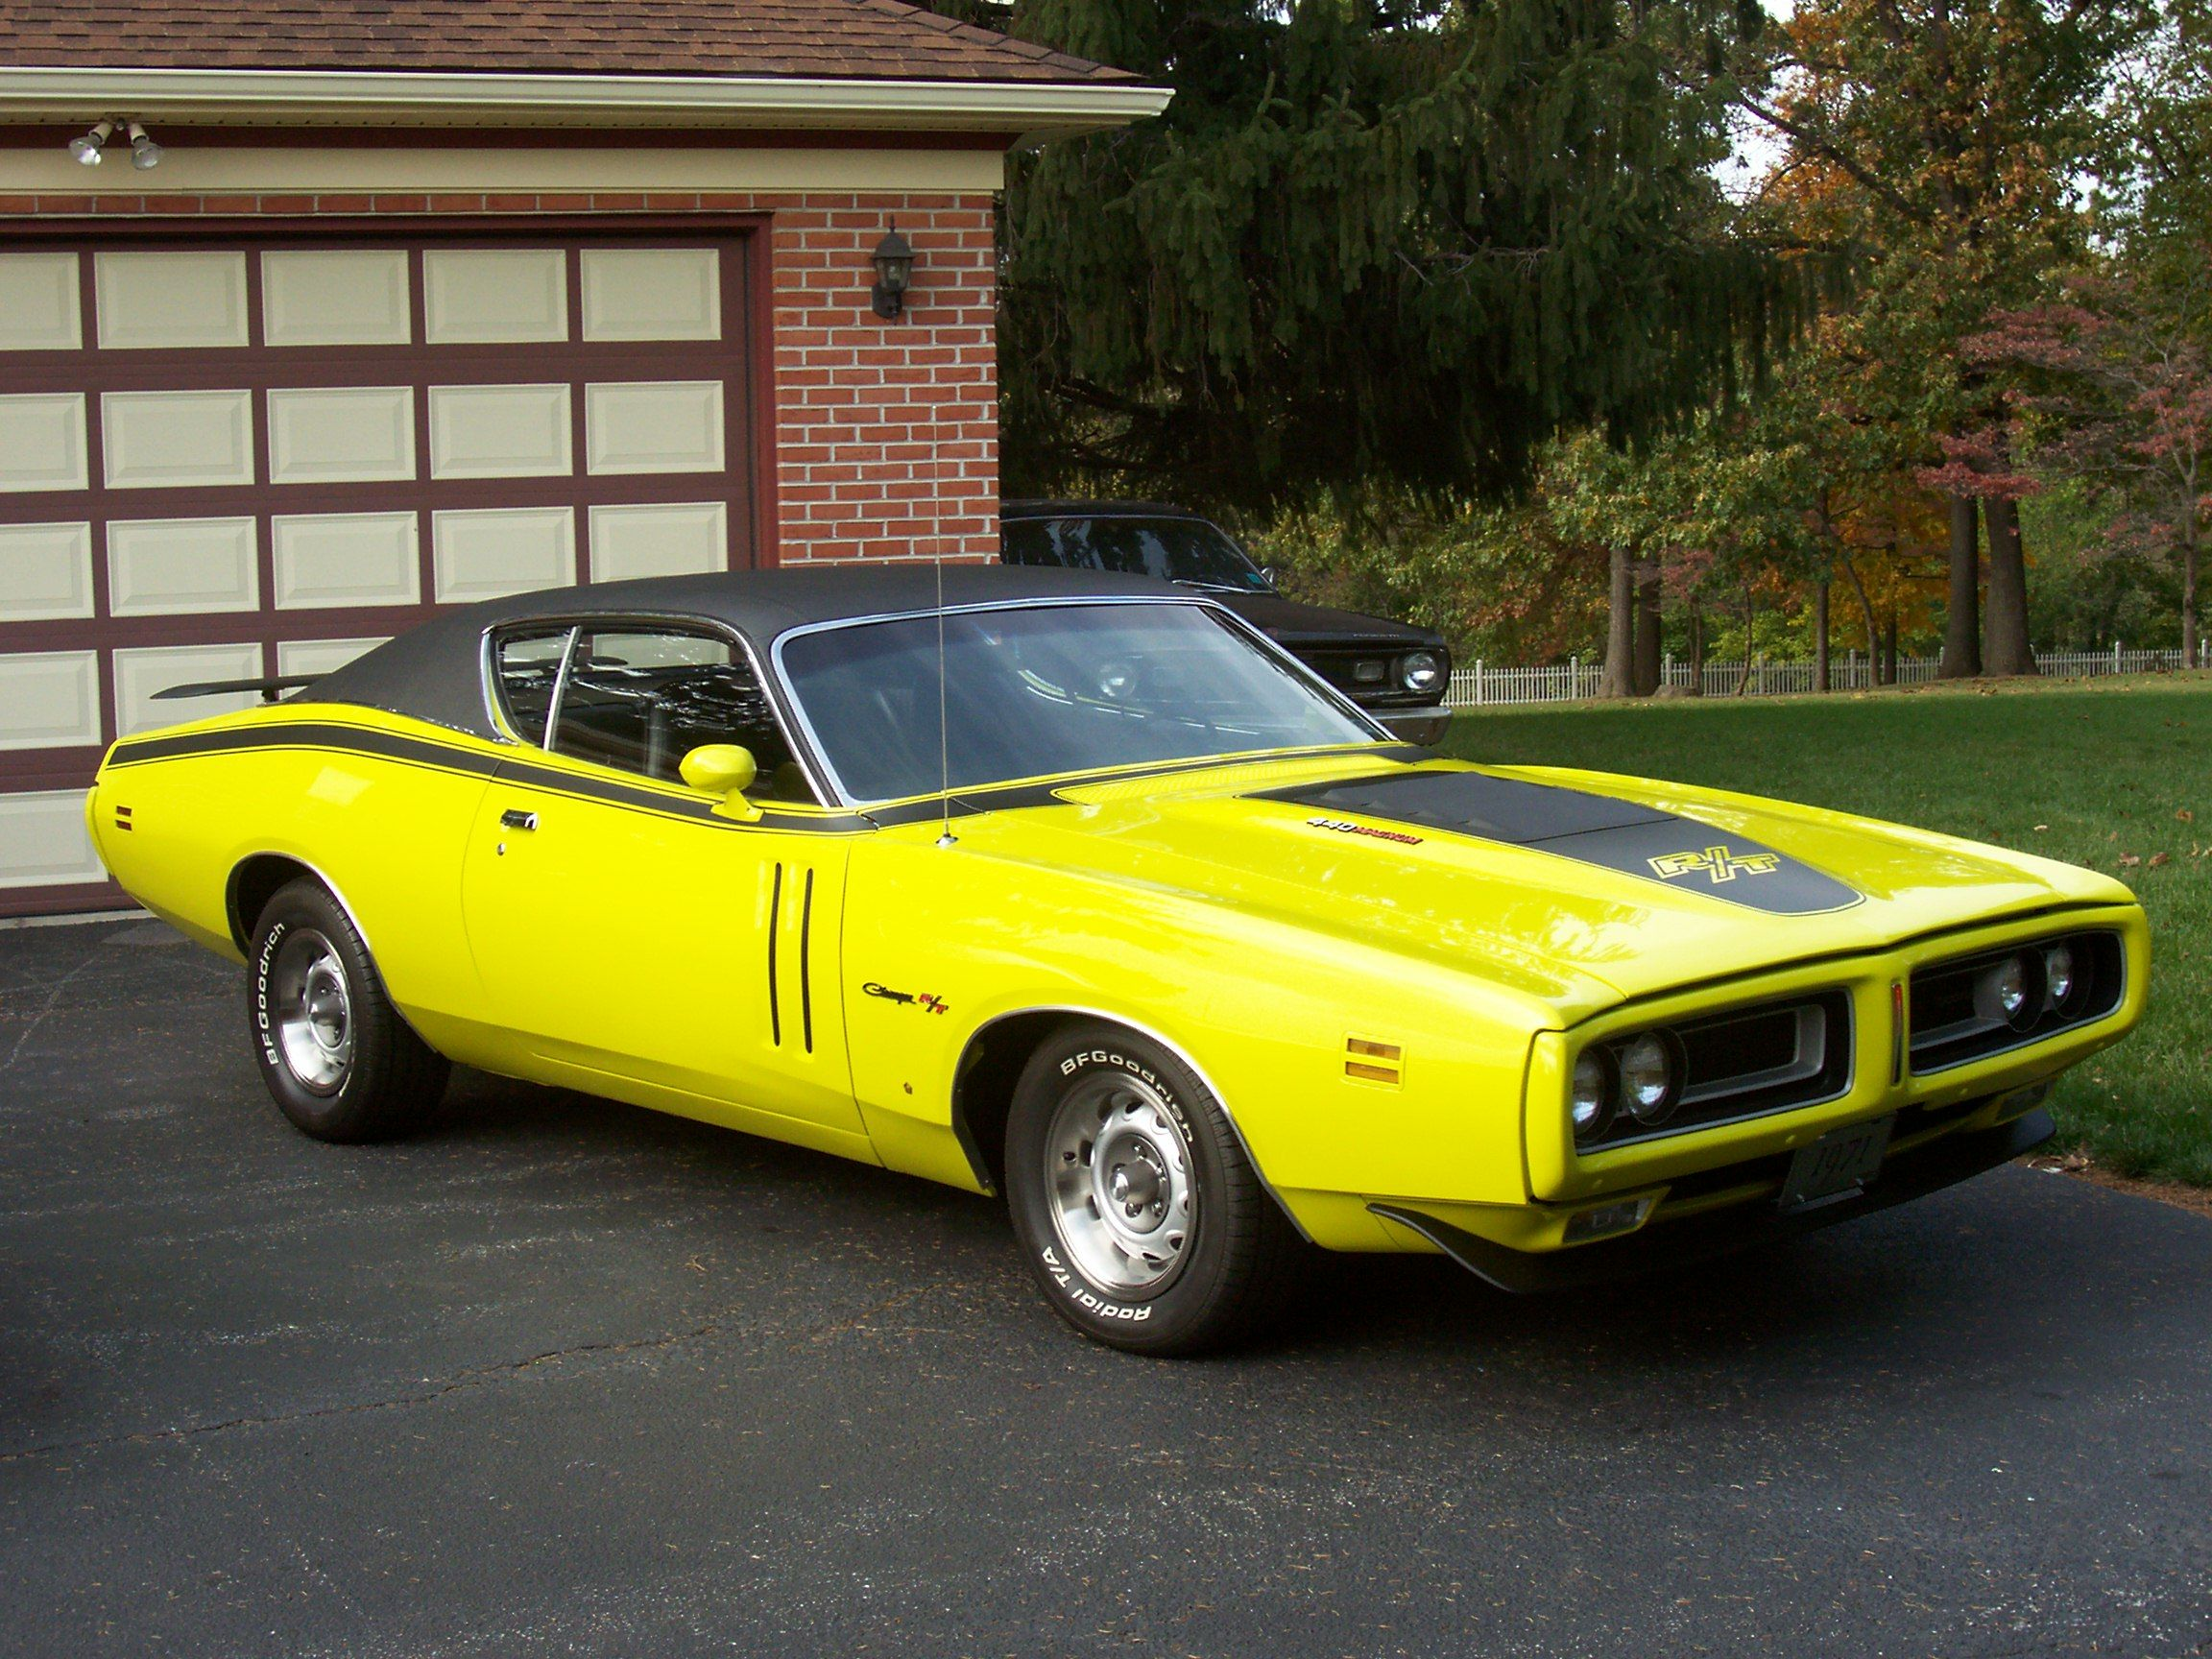 1971 dodge charger rt yahoo image search results mopar muscle cars pinterest dodge. Black Bedroom Furniture Sets. Home Design Ideas